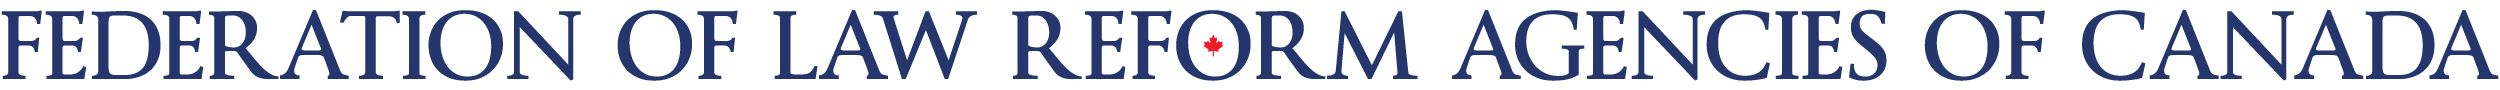 federation of law reform agencies of canada